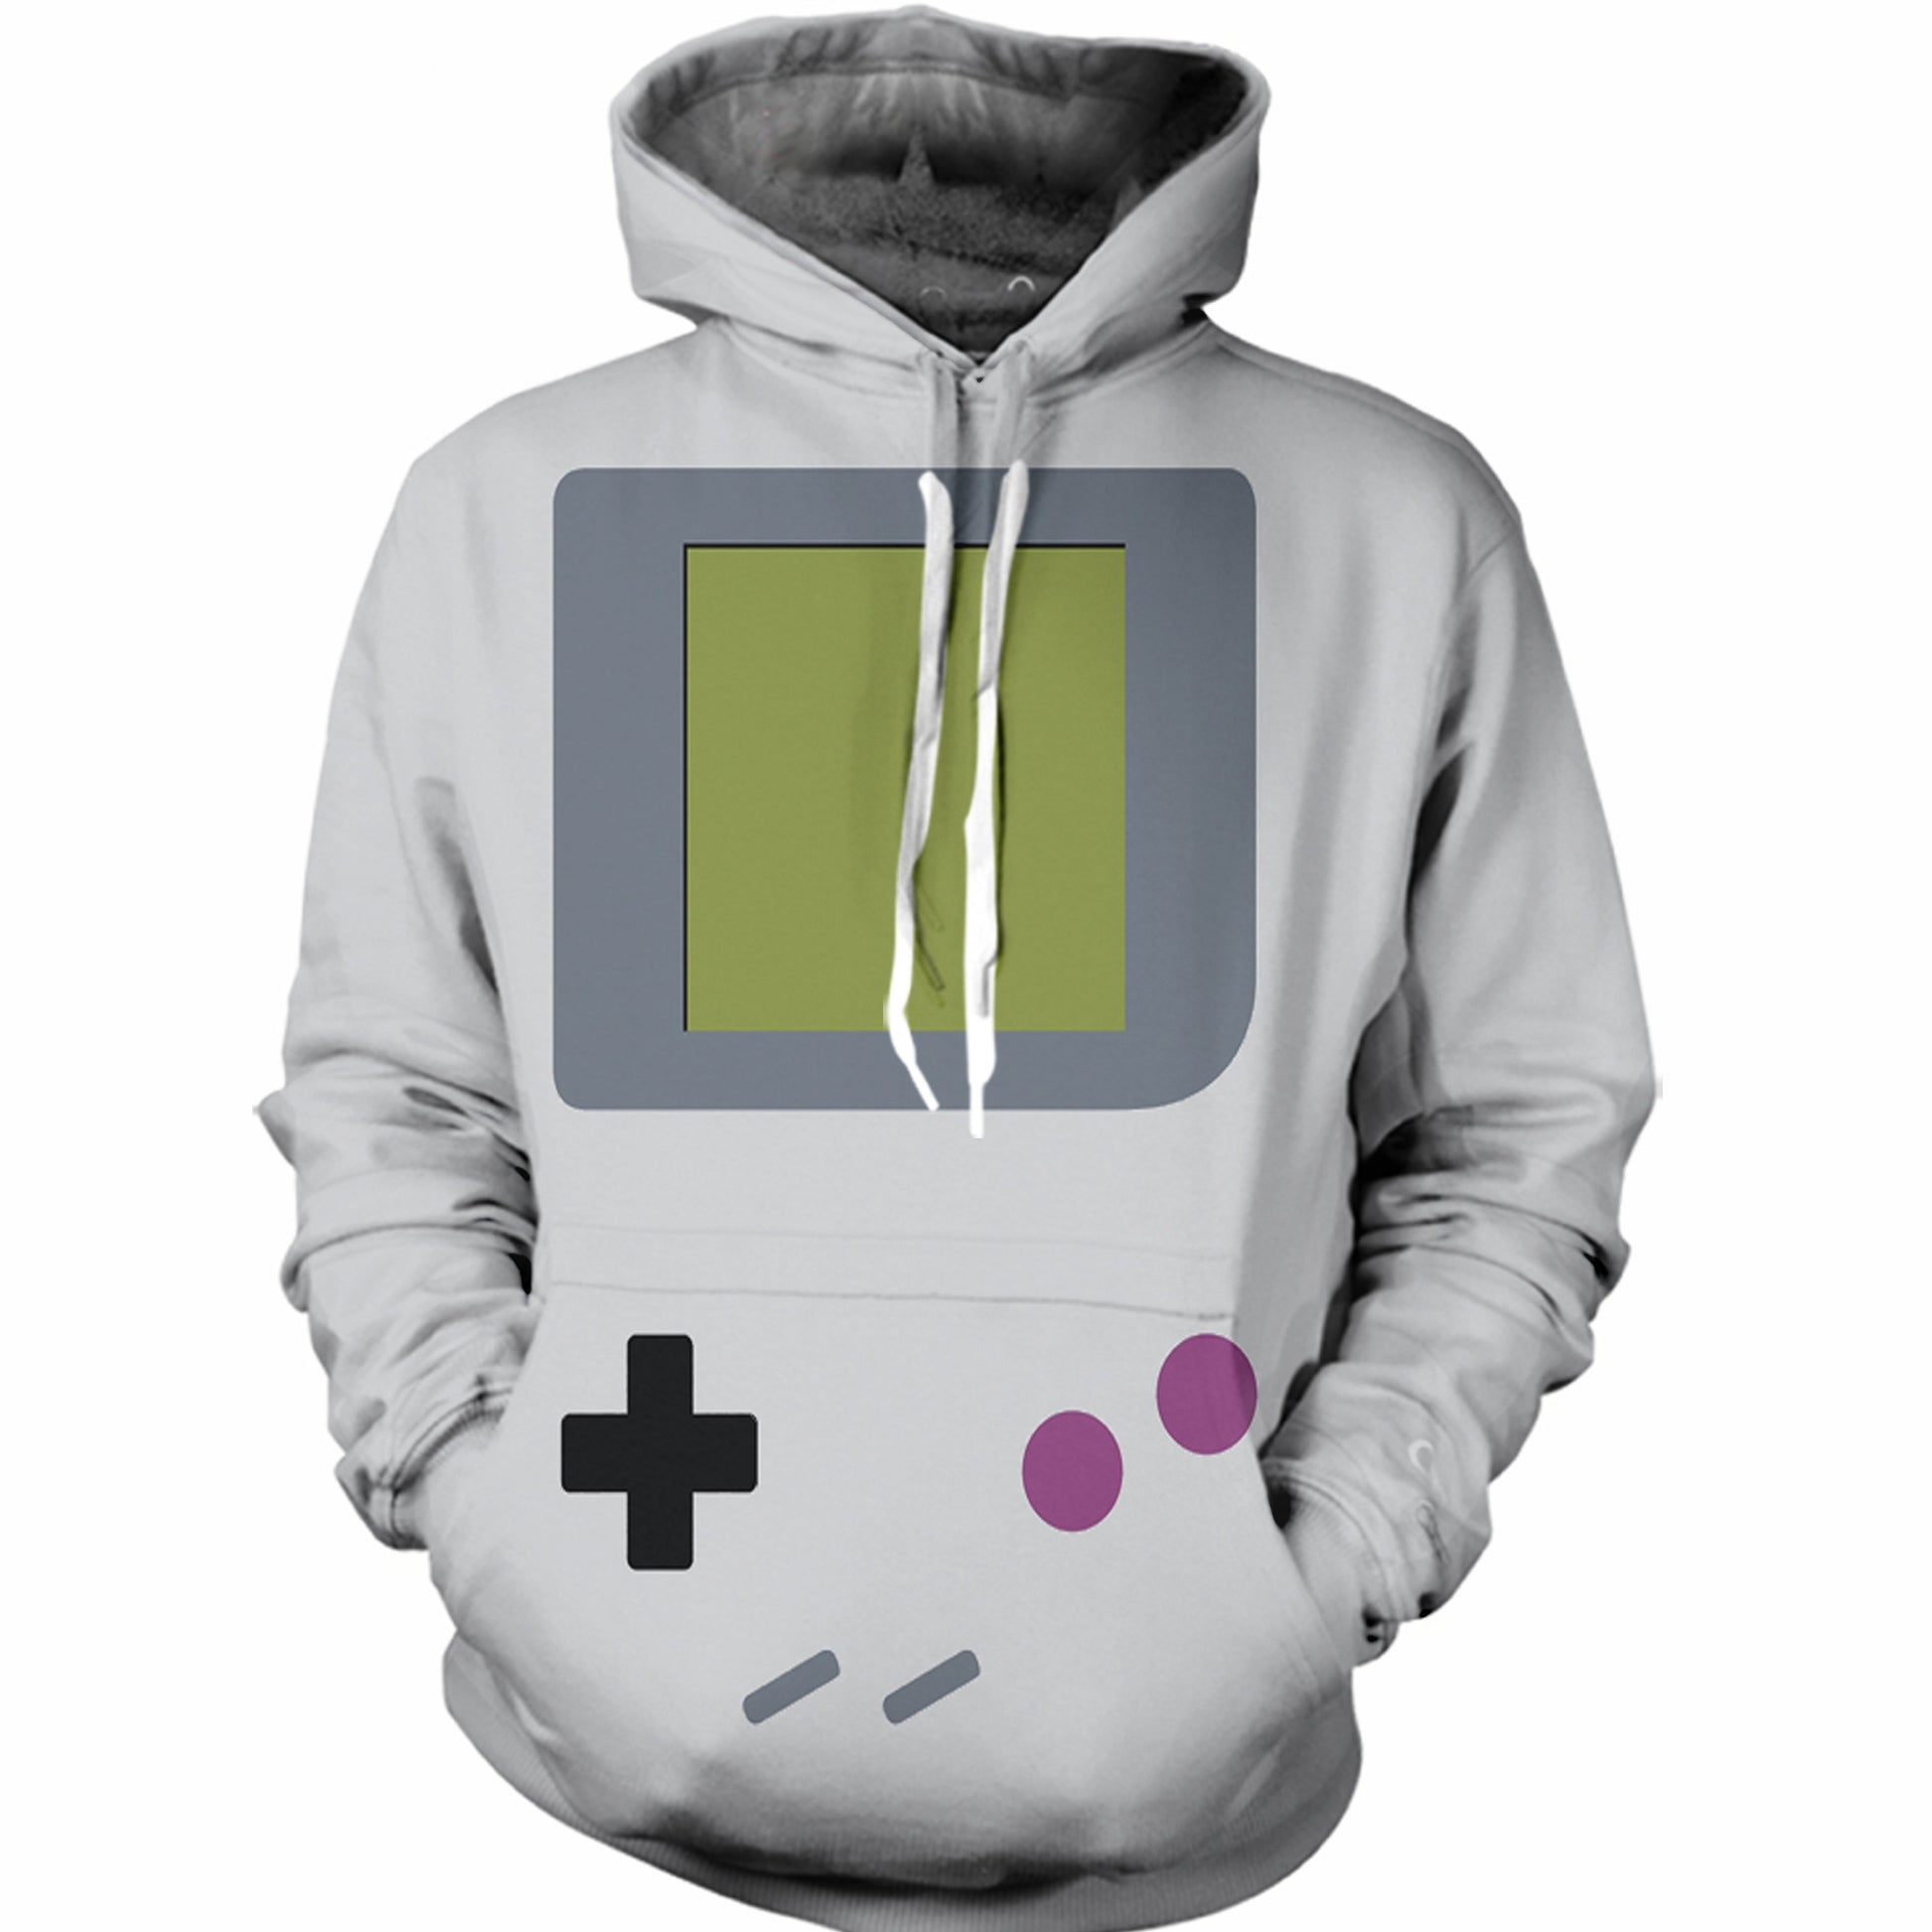 The OG Gameboy Hoodie